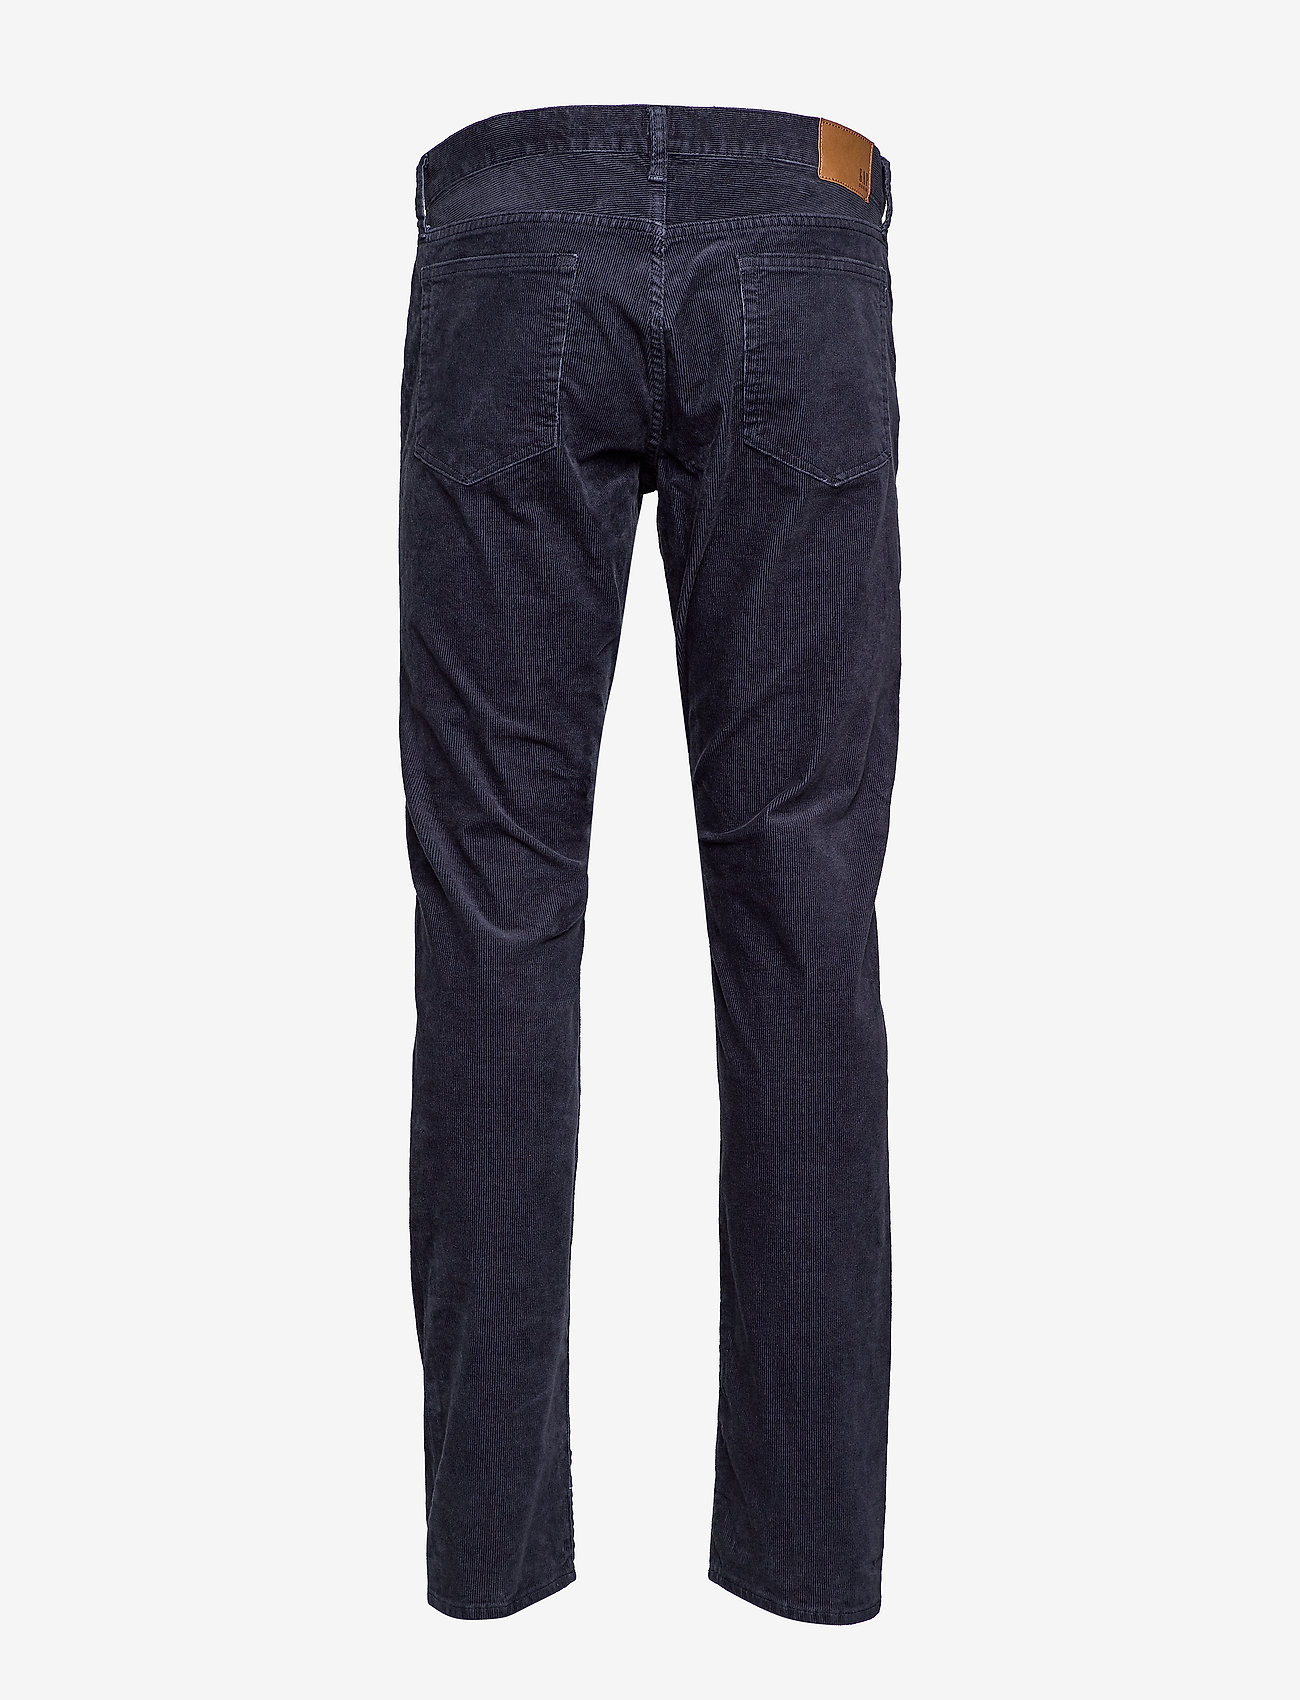 Gap Slim Fit Cords With Gapflex - Jeans New Classic Navy